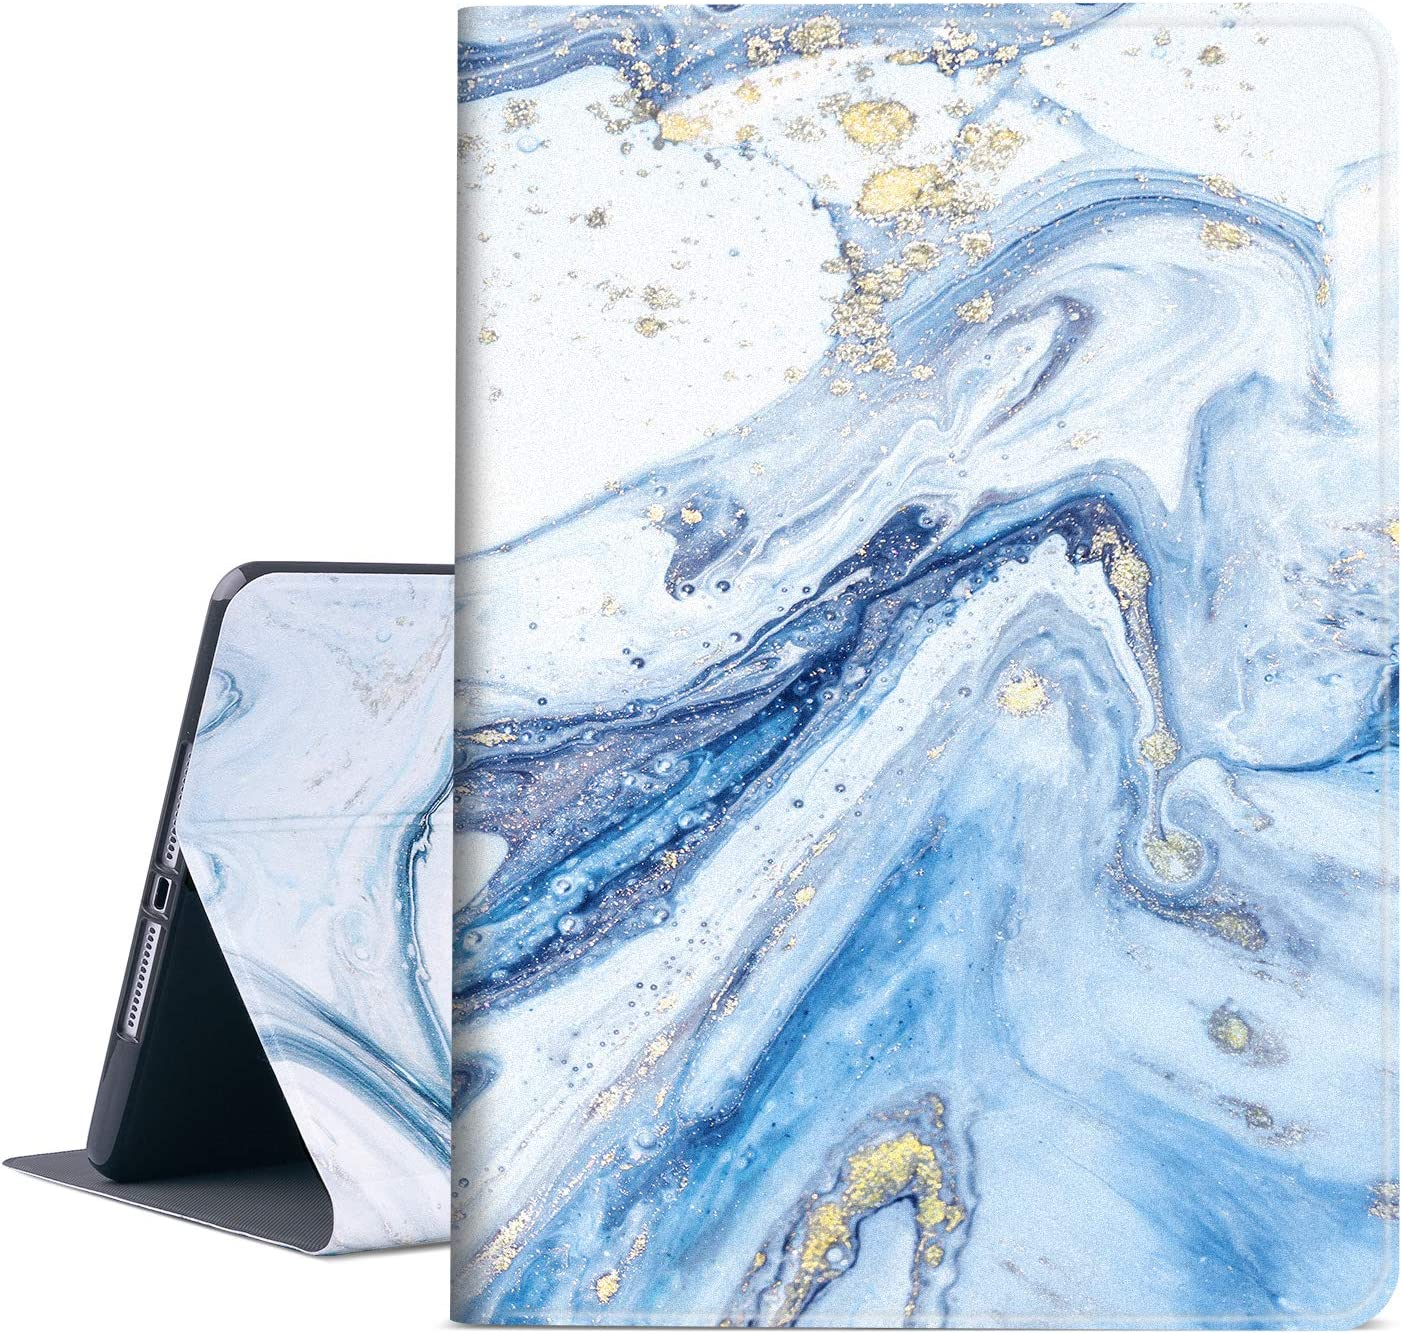 New iPad 9.7 inch 2018/2017 Case, Vimorco Premium Leather Case, Protective Hard Shell Cover for Apple iPad Air Air 2 ipad 6th Generation 5th Generation with Auto Wake/Sleep, Quicksand Marble